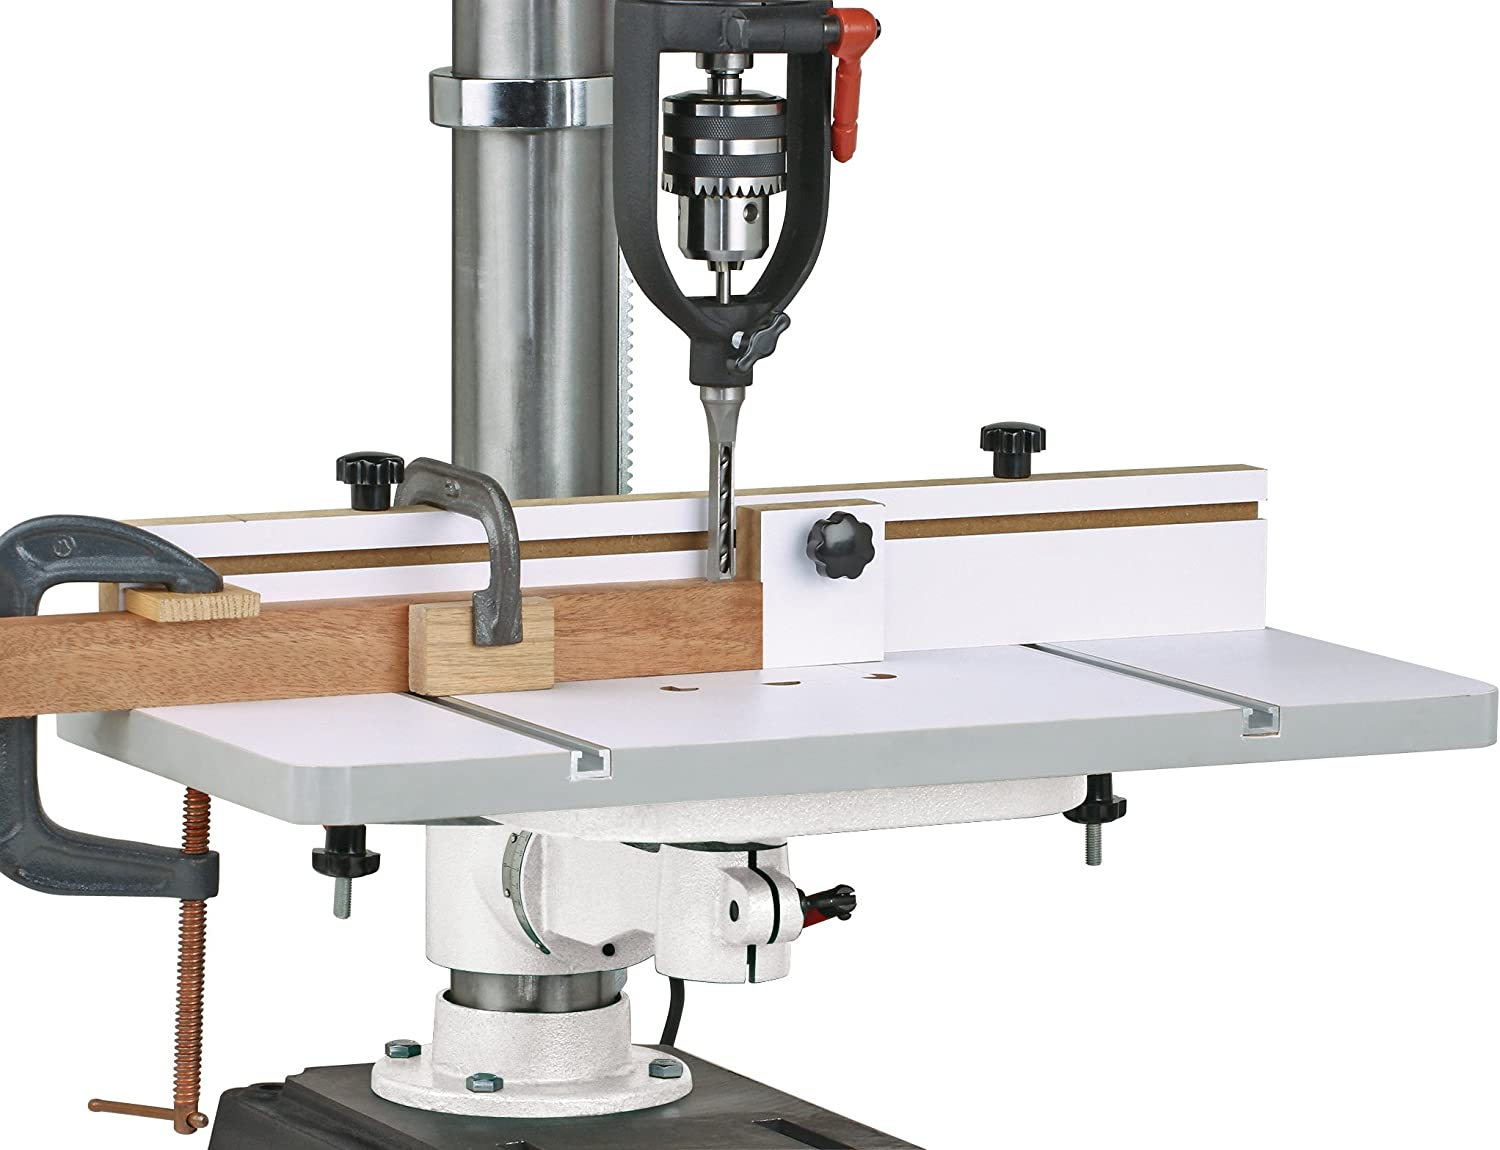 best drill press table: Woodstock D4033 - perfect for those on a budget